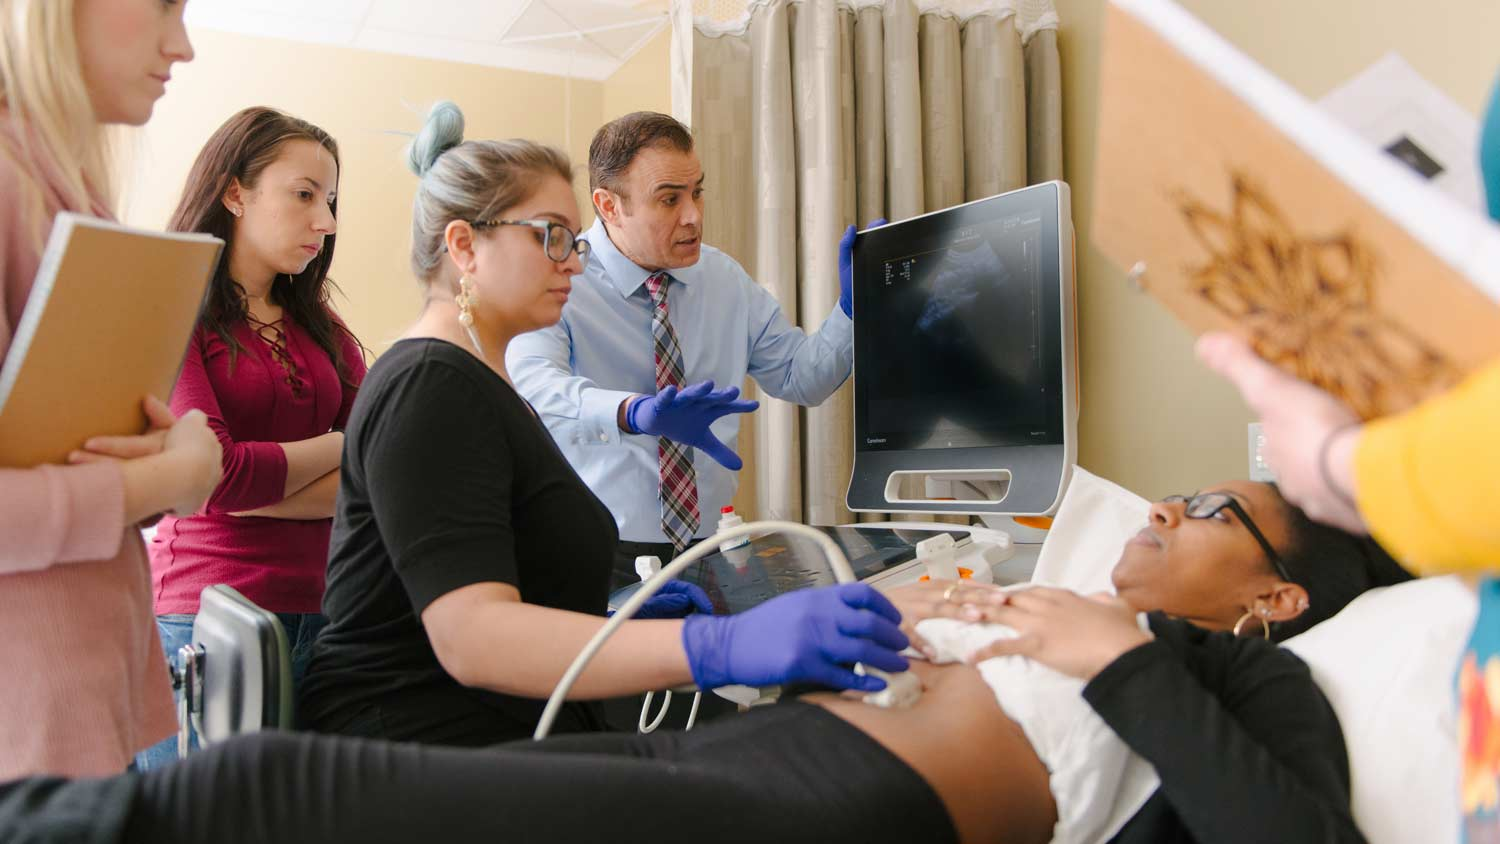 A group of people performing a sonogram on a patient